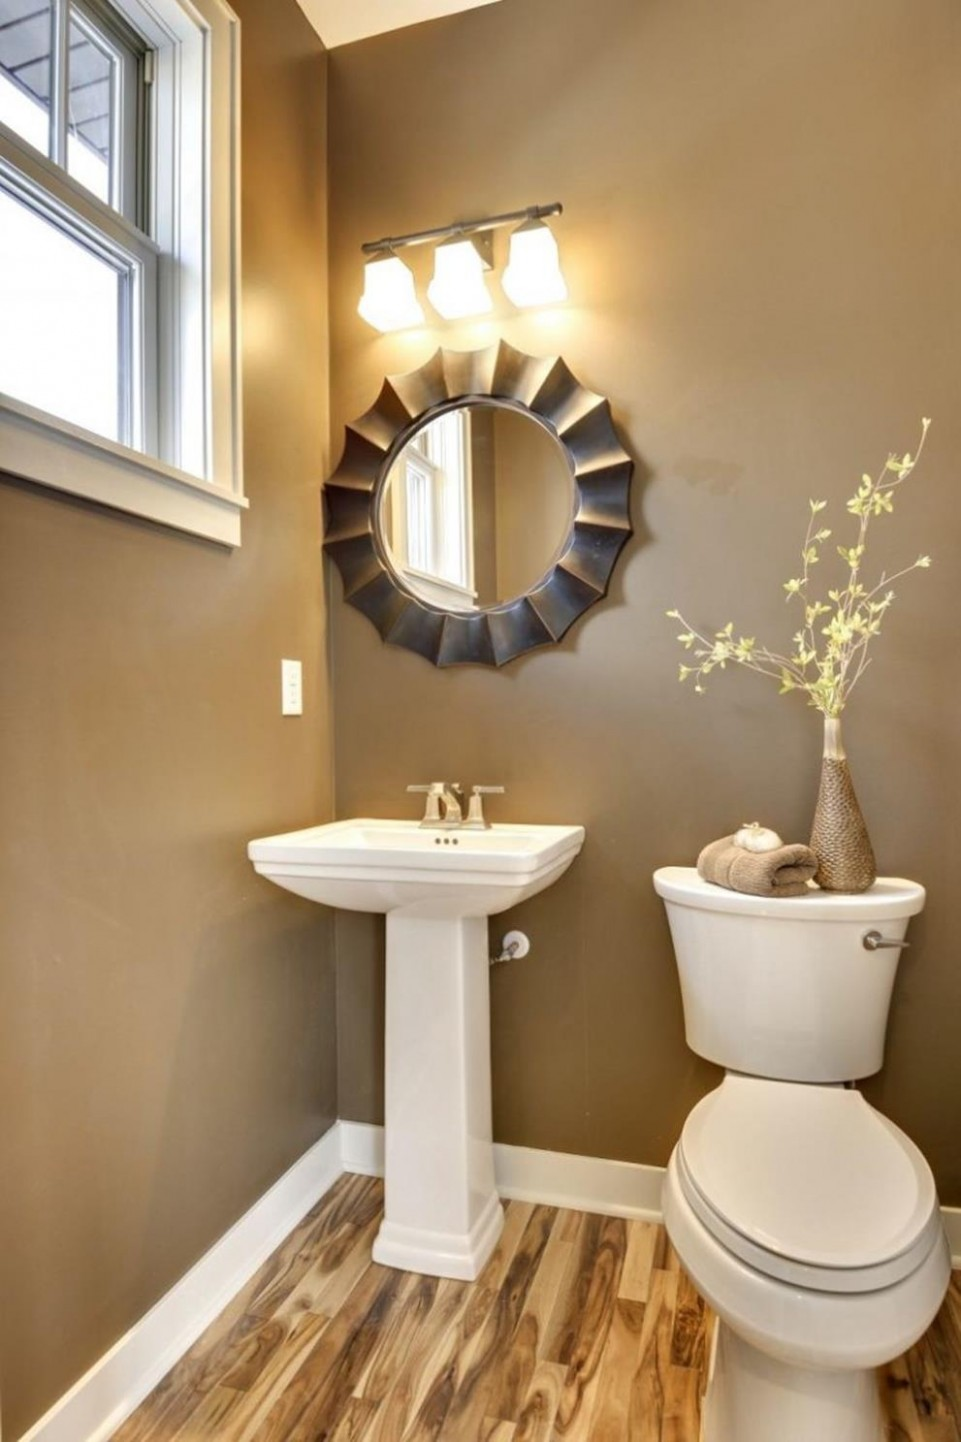 8 Perfect Apartment Bathroom Decorating Ideas On A Budget - Gongetech - Apartment Bathroom Decorating Ideas On A Budget